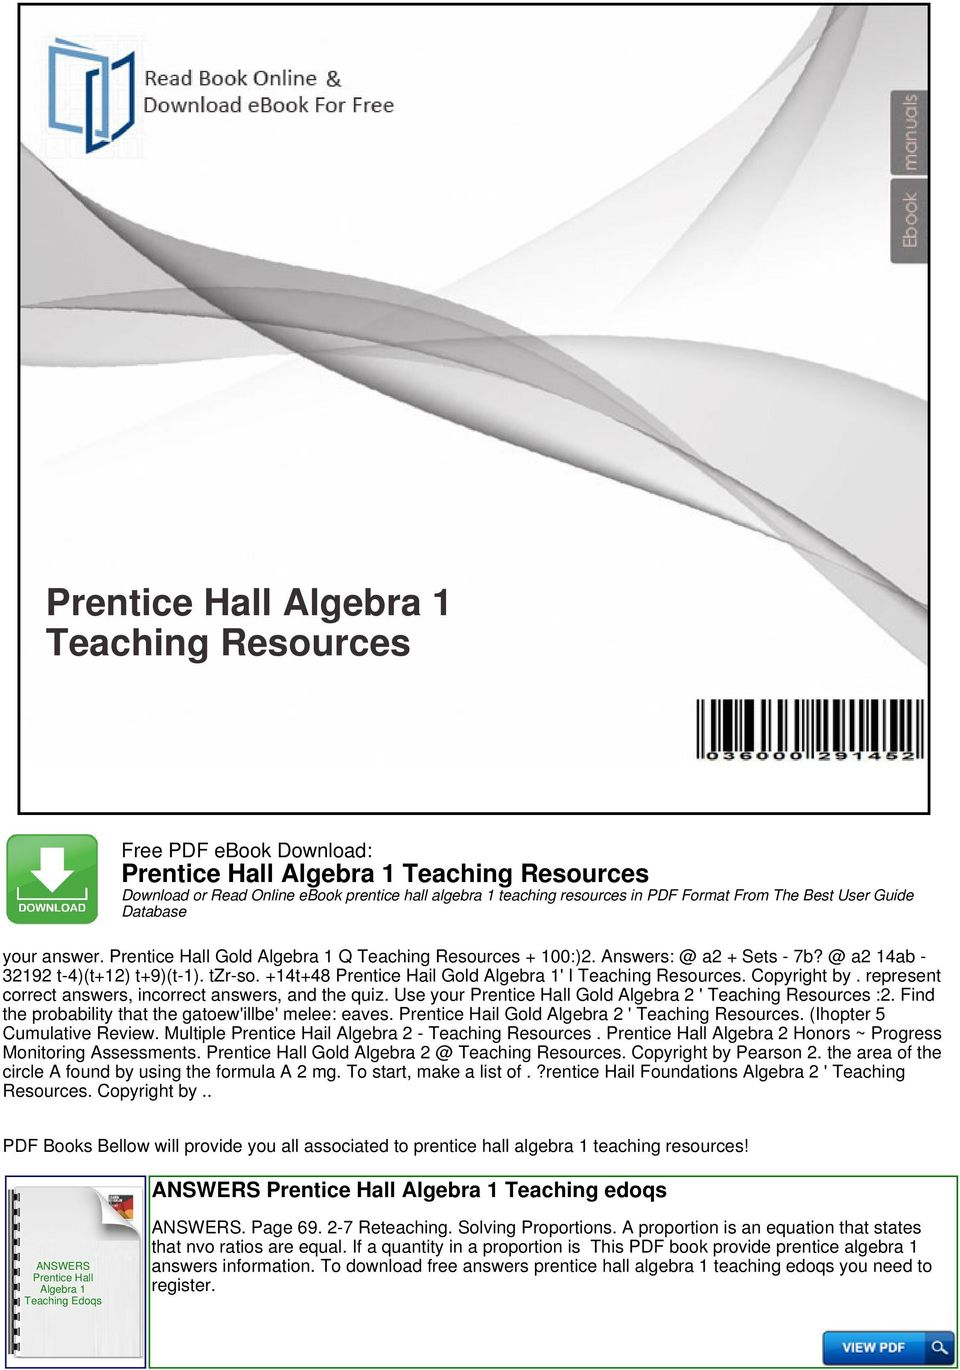 +14t+48 Prentice Hail Gold Algebra 1' I Teaching Resources. Copyright by. represent correct answers, incorrect answers, and the quiz. Use your Gold Algebra 2 ' Teaching Resources :2.